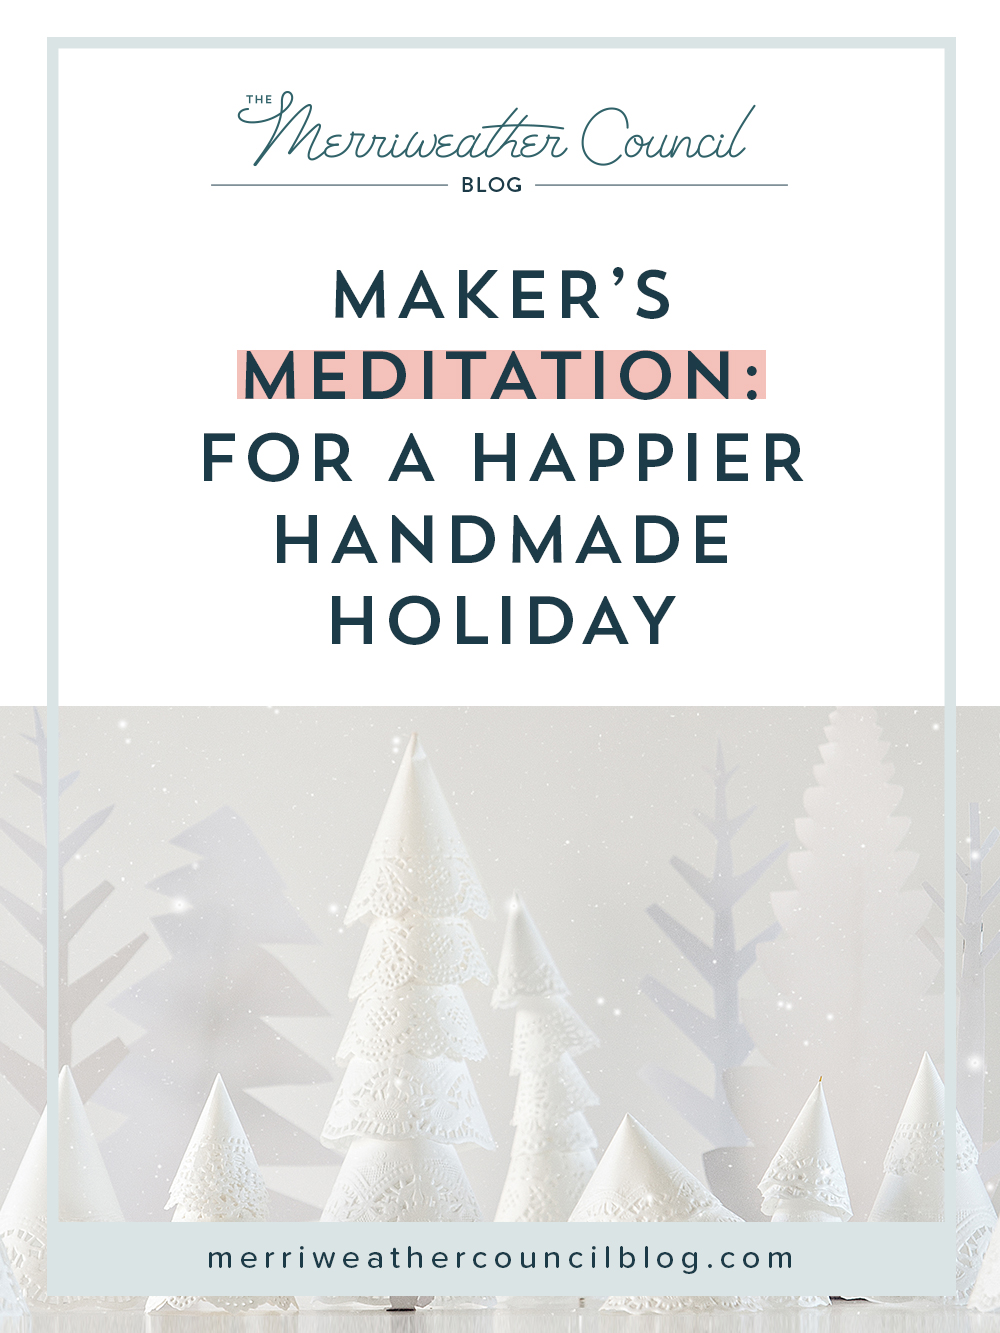 makers meditation | the merriweather council blog